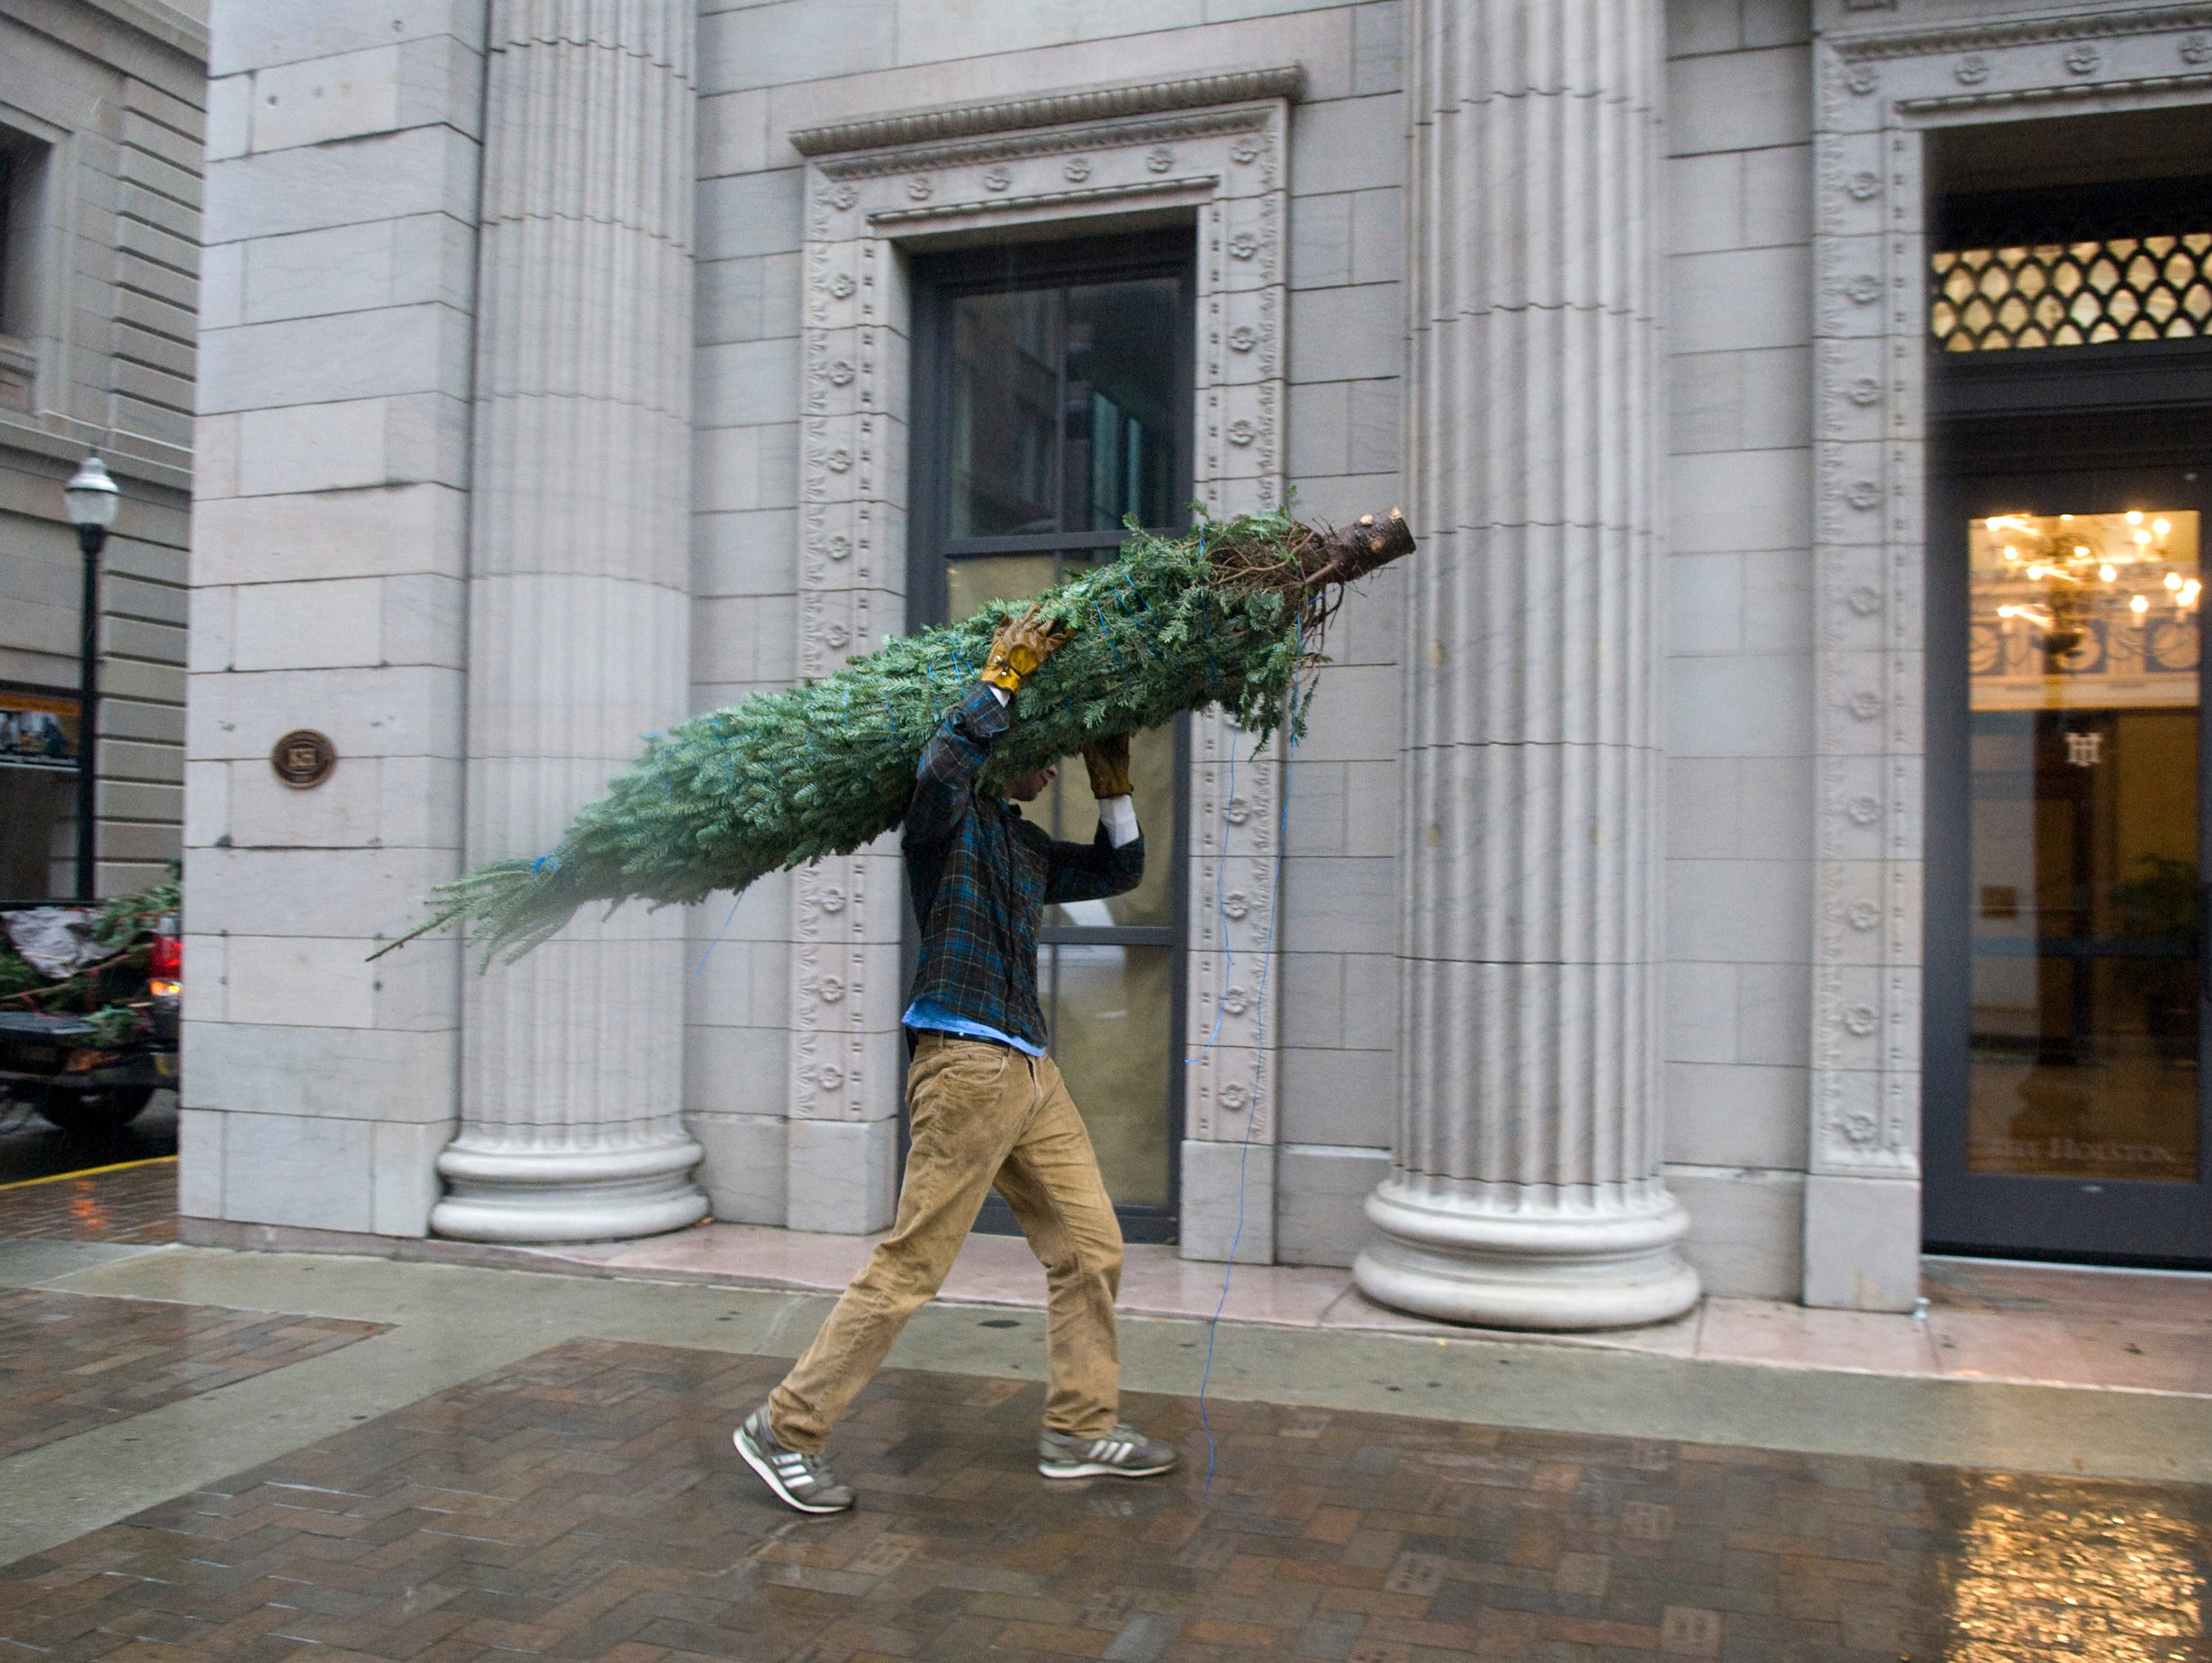 Raisethetree.com co-founder James Trimble delivers a Fraser fir to a customer Tuesday, Nov. 30, 2010 on Gay Street. Trimble and fellow  University of Tennessee graduate Paul Dickenson founded the new start up company that delivers Christmas trees that are ordered online. Trimble says the company gives 25 percent of profits to a community organization of the customer's choice. Rock n' roll fans will recognize Trimble as the lead singer of the band Dirty Guv'nahs.